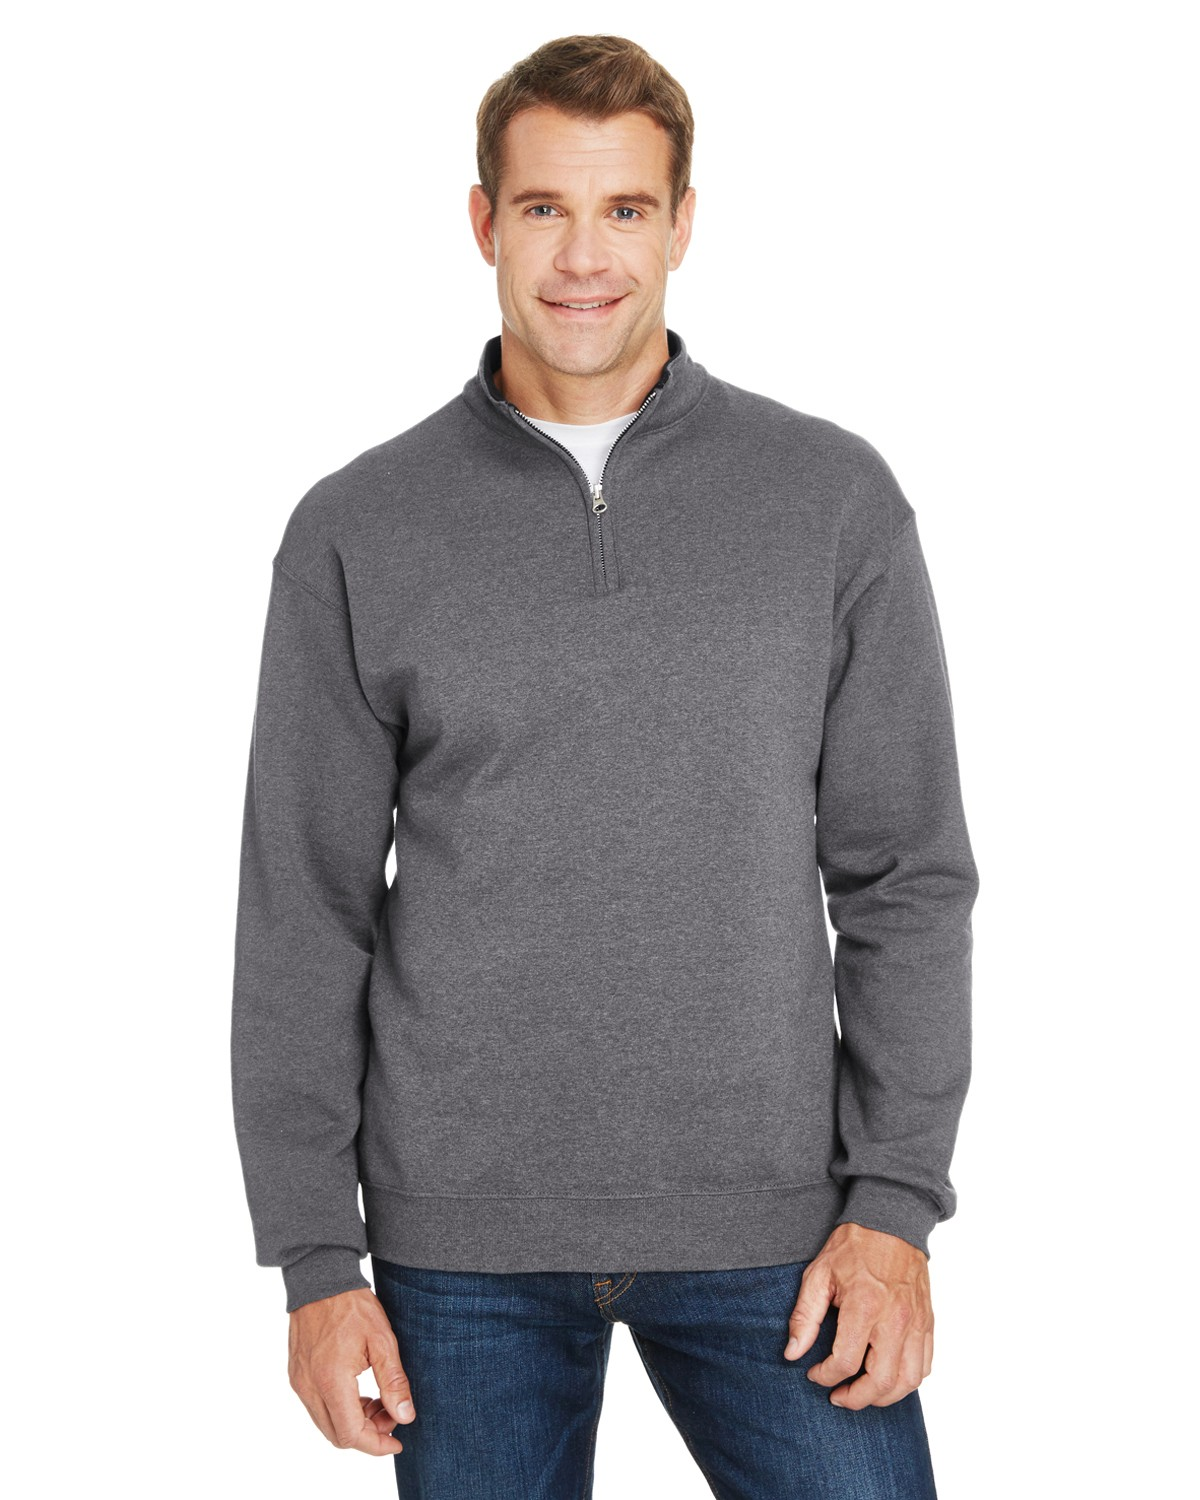 SF95R Fruit of the Loom CHARCOAL HEATHER